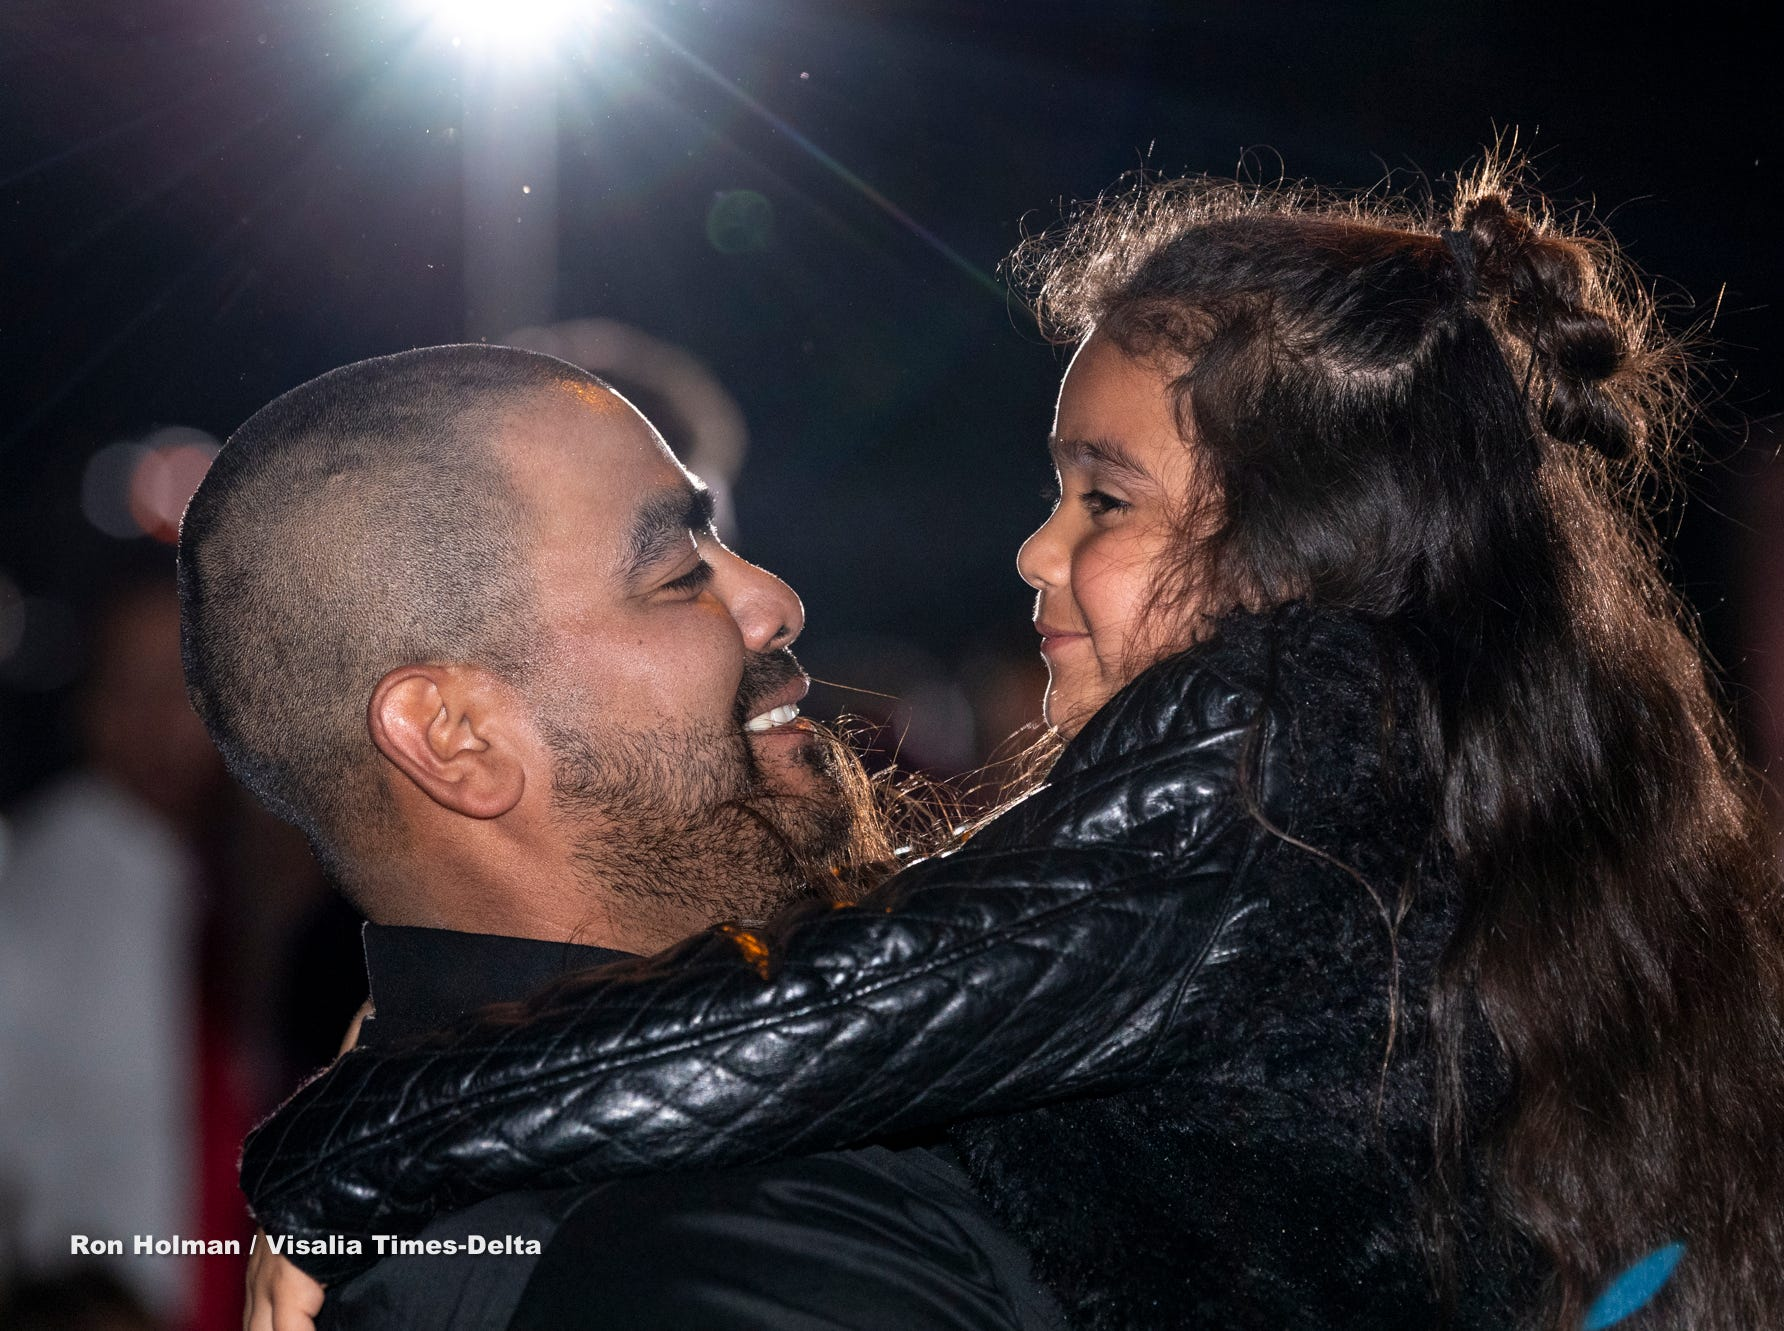 """Isaac Castro lifts his daughter Cambria Castro, 6, during the annual Father-Daughter Dance at the Visalia Convention Center on Saturday, February 16, 2019. This year's theme was """"Masquerade Ball,"""" and included music, dancing and refreshments."""